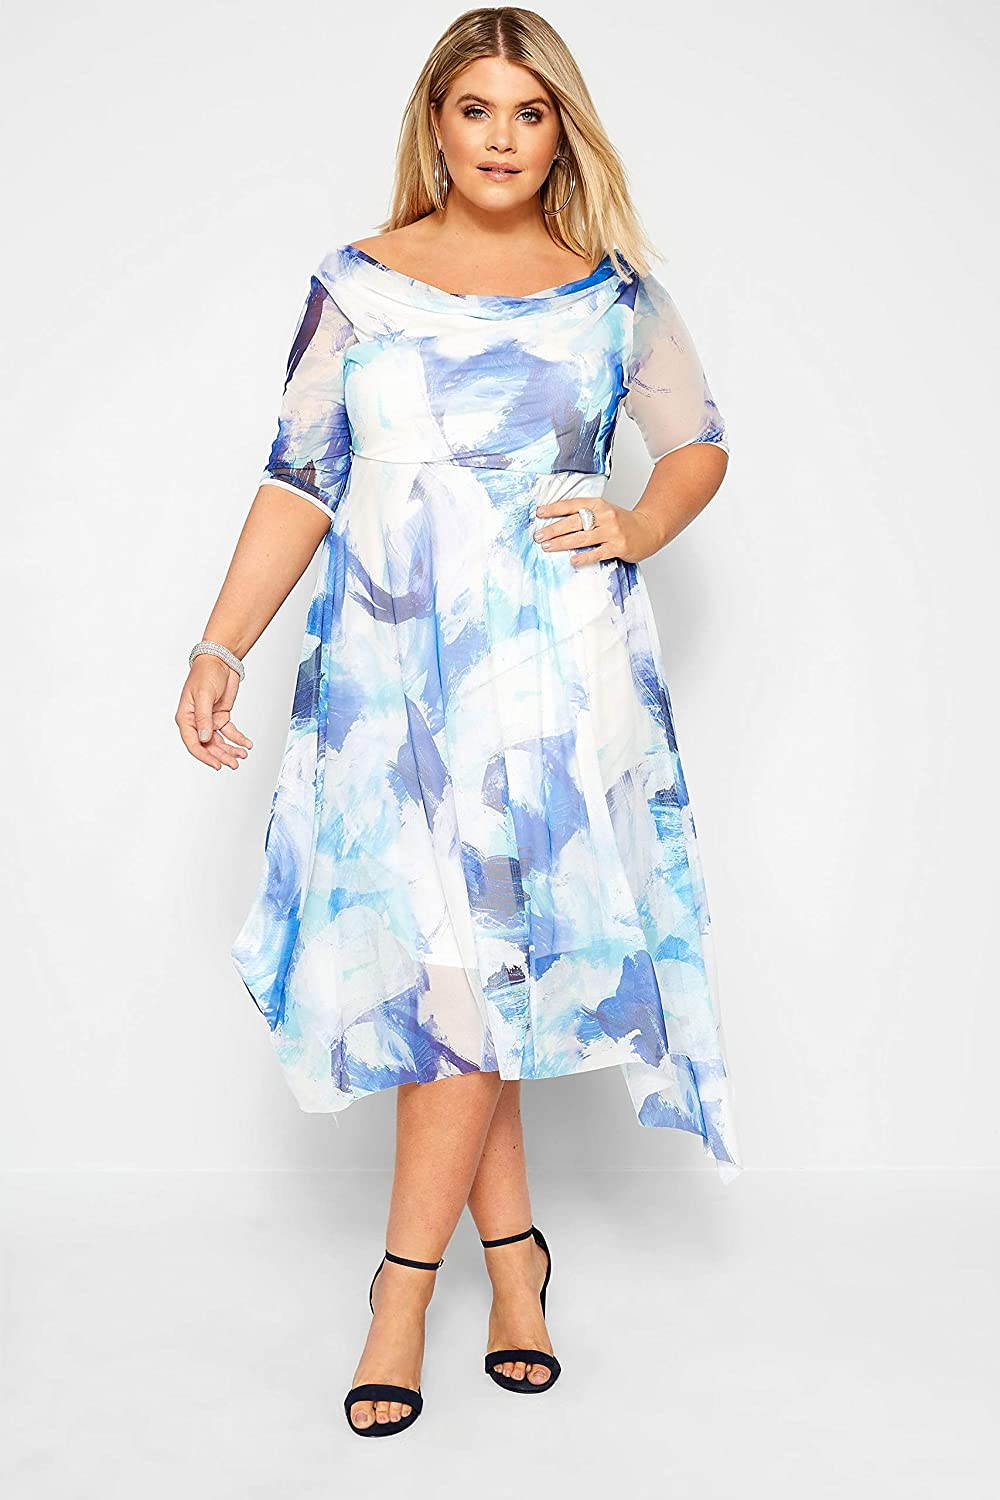 Yours Clothing Womens Plus Size Double Layer Floral Dress